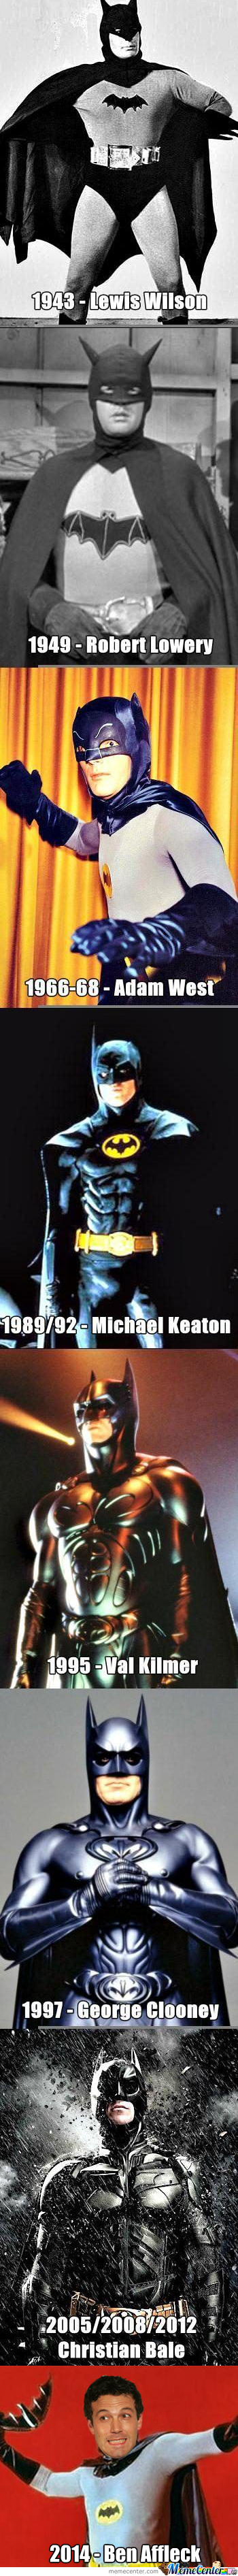 Evolution Of The Dark Knight